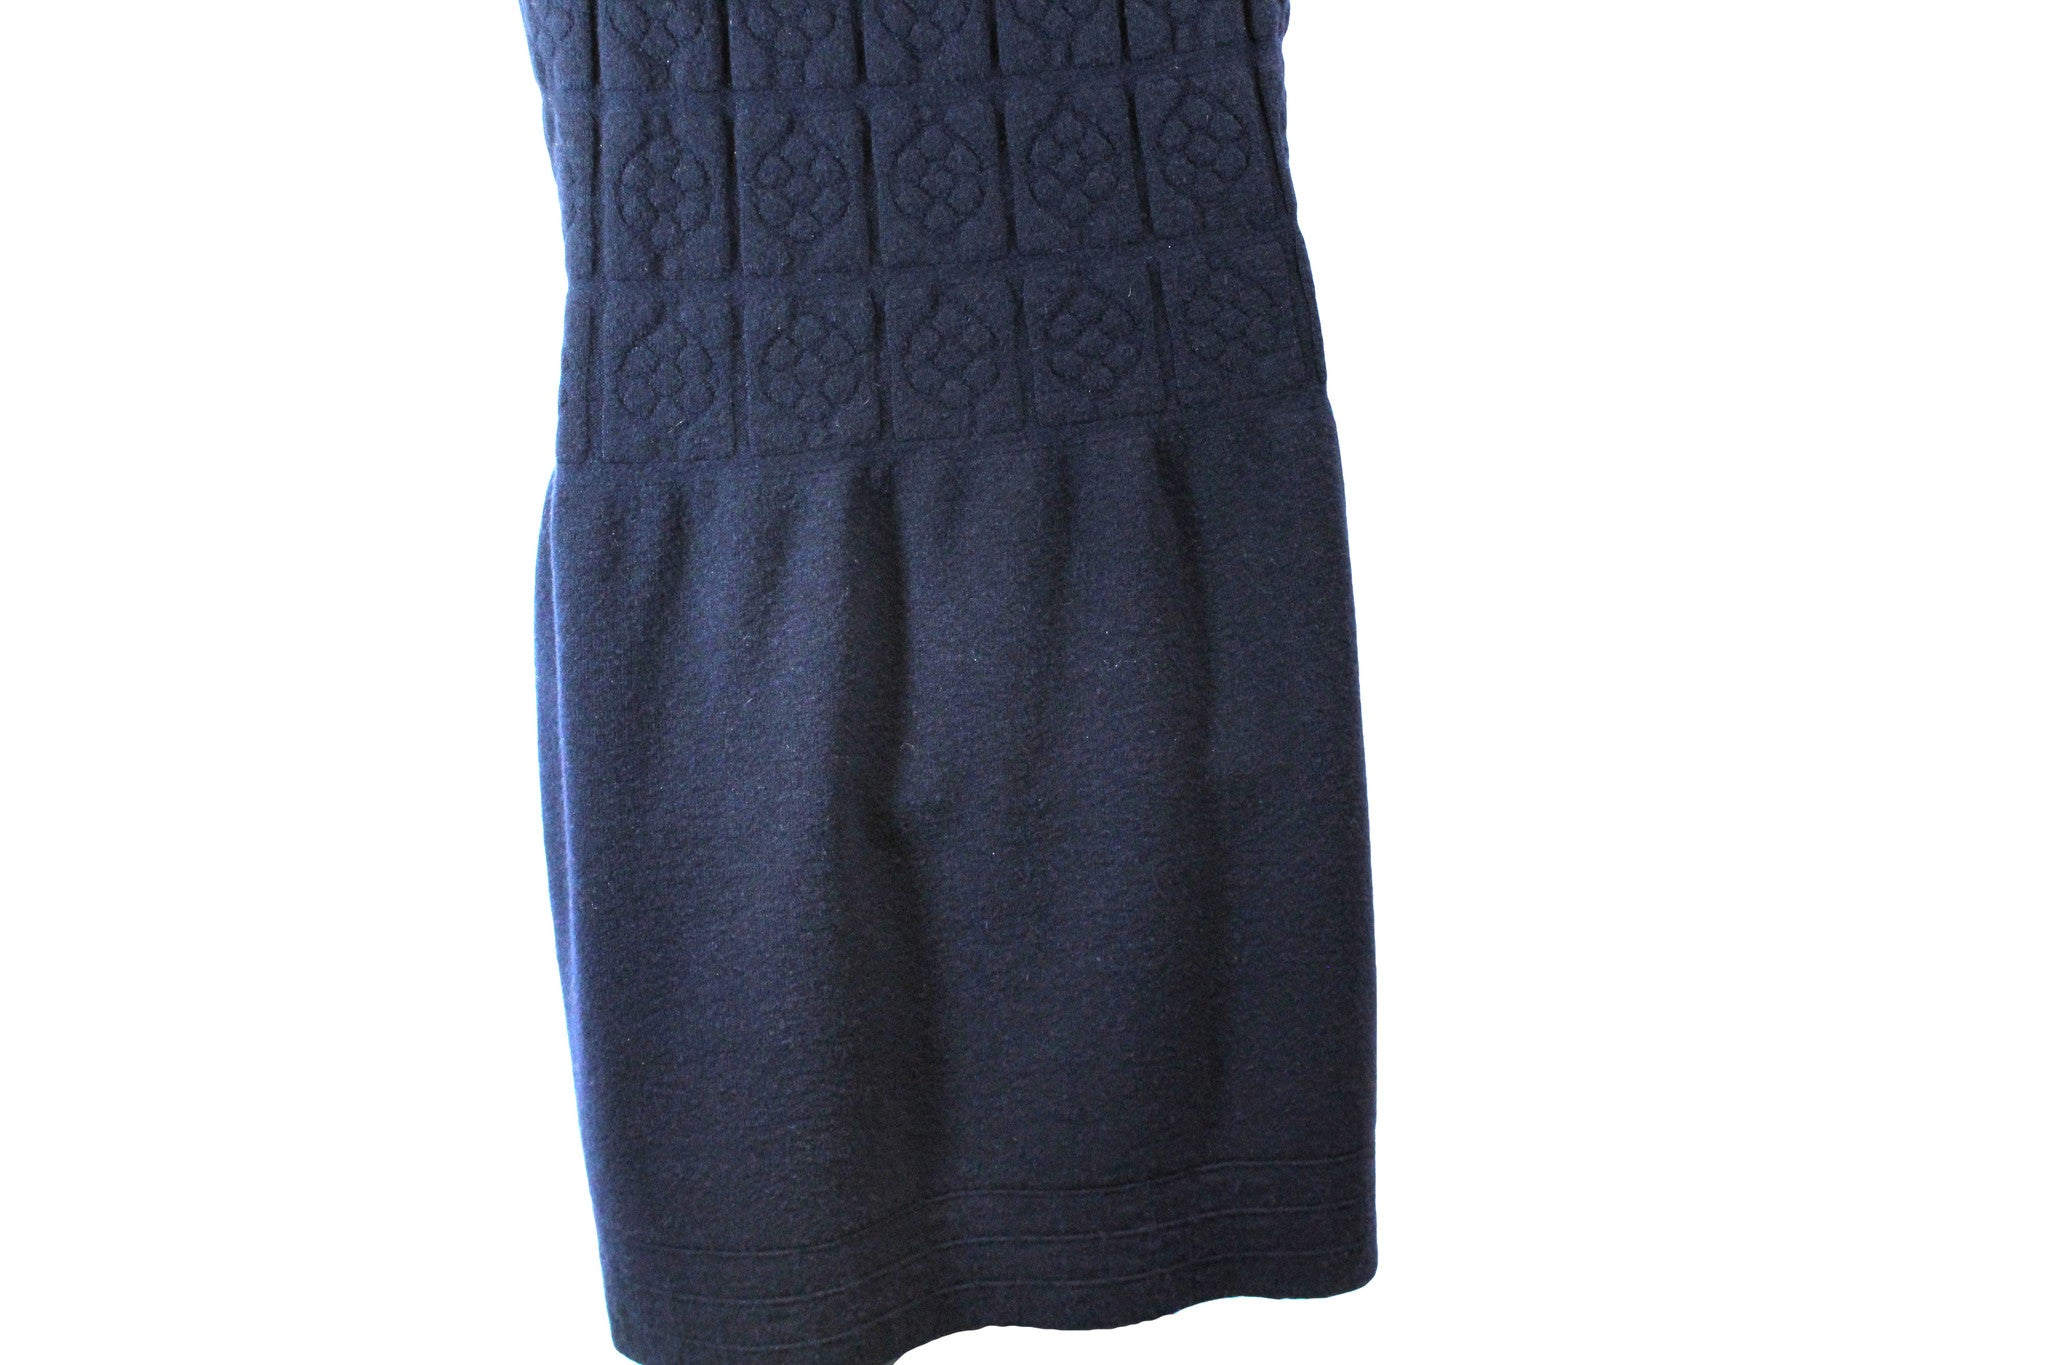 Chanel Sleeveless Navy Dress w/ Floral Grid & Sequin Detail (Size 40) - Encore Consignment - 4